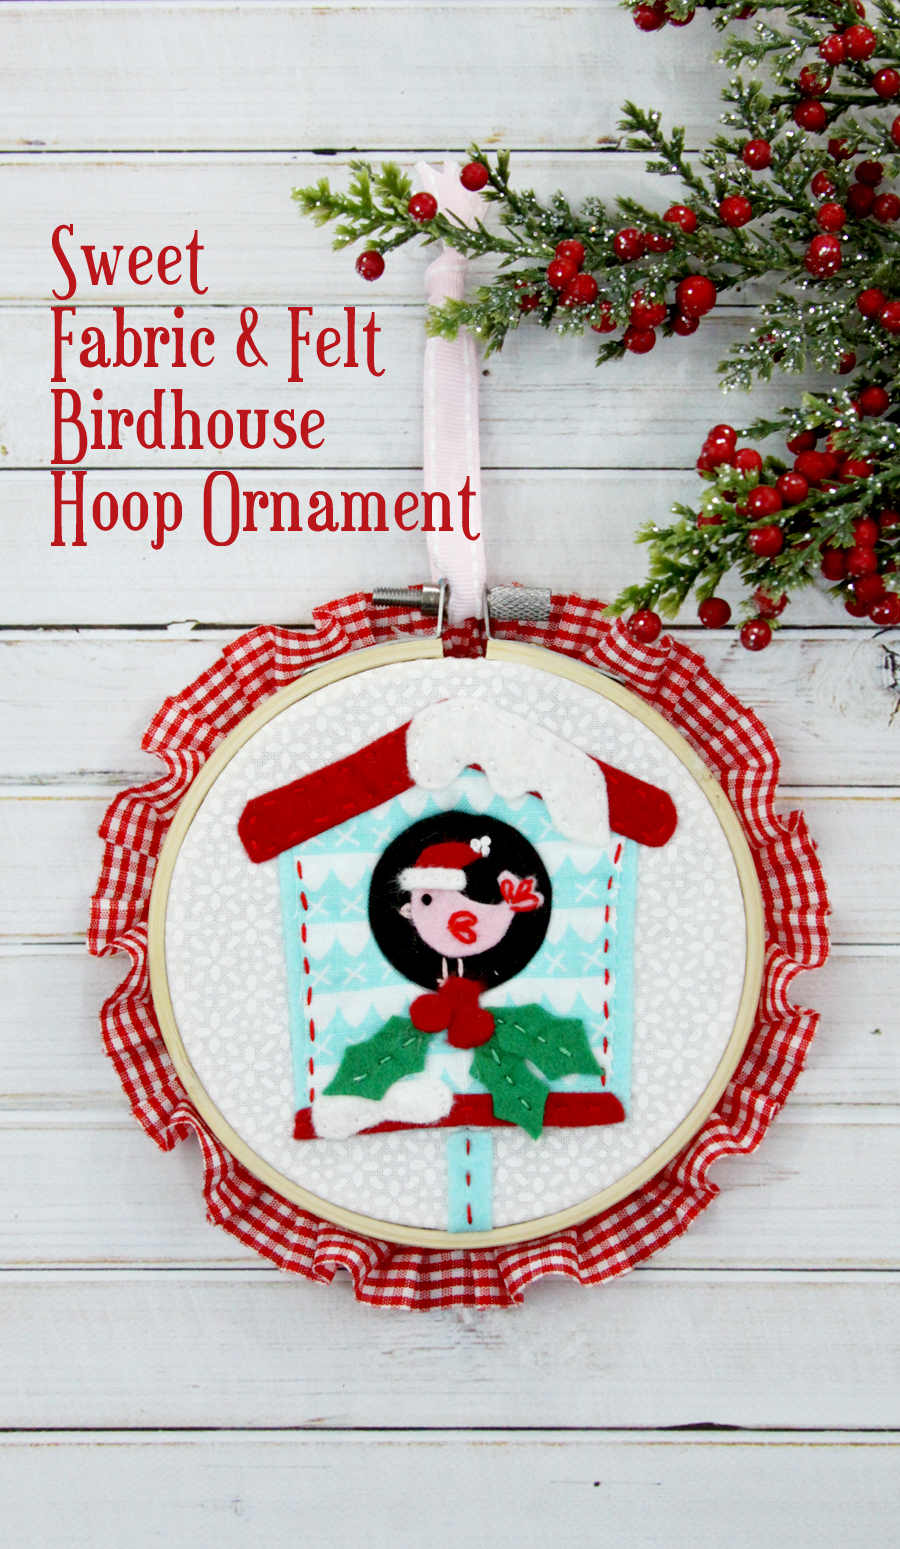 Sweet Fabric and Felt Birdhouse Hoop Ornament | Fabulous and Fun DIY Christmas Ornaments by popular Tennessee craft blog, Flamingo Toes: image of a fabric and felt birdhouse hoop ornament.